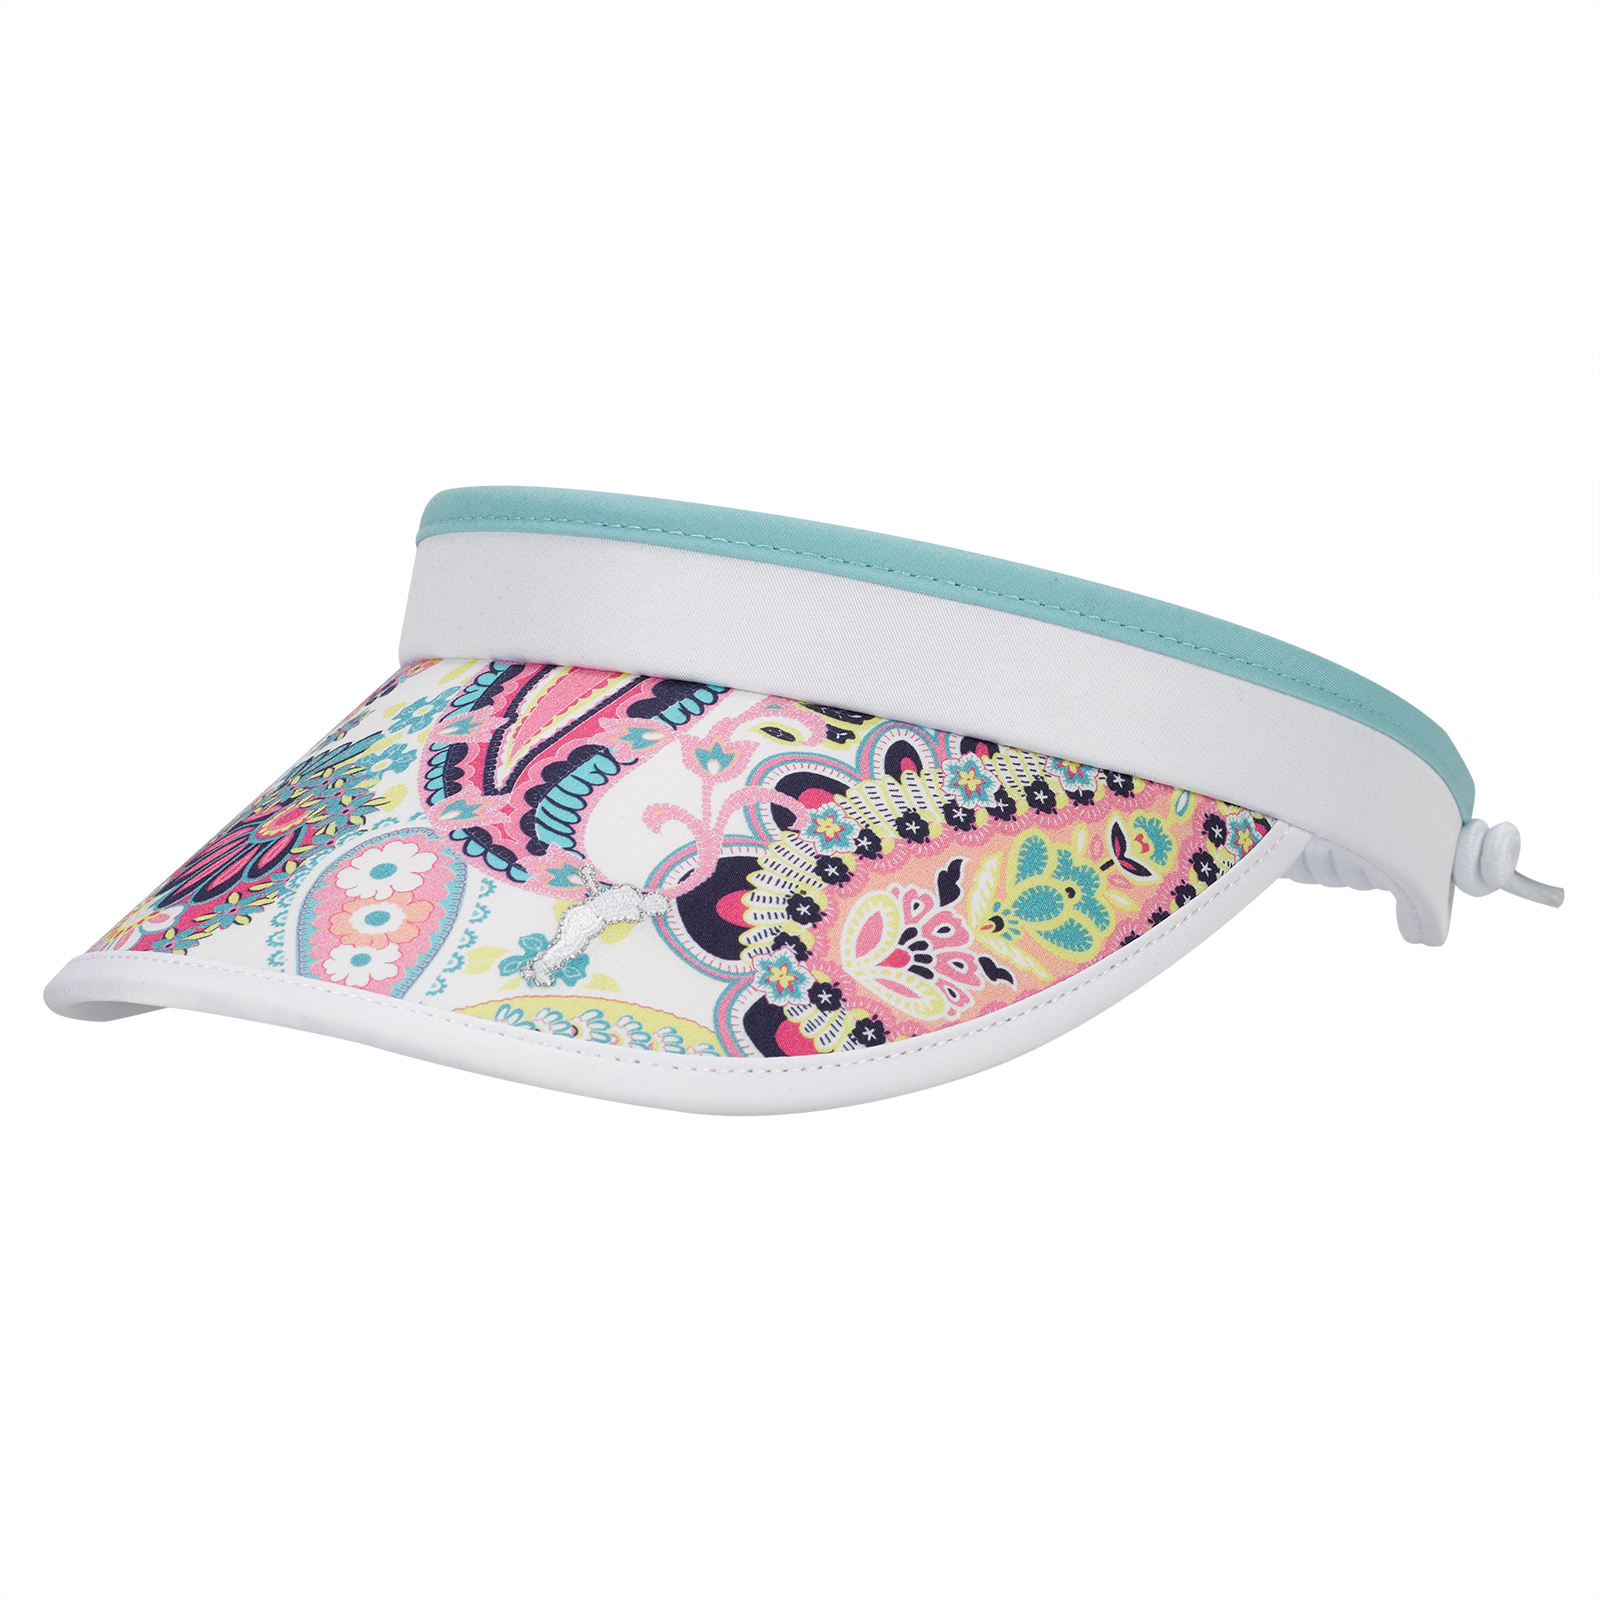 Ladies' paisley golf cable printed visor